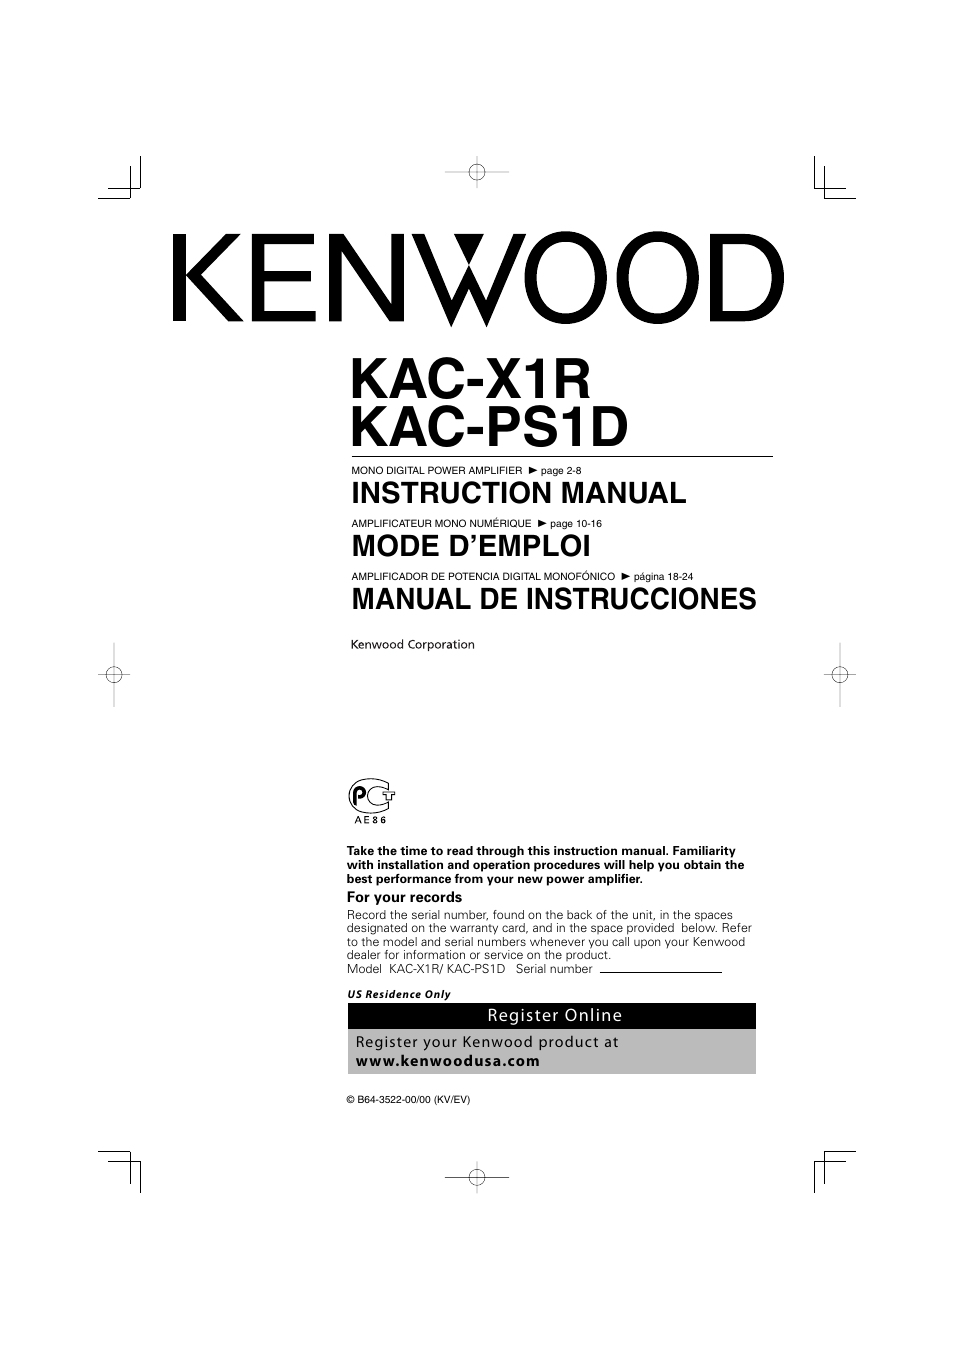 Kenwood Excelon Instruction Manual One Word Quickstart Guide Book Dnx890hd Wiring Diagram Kac X1r User 24 Pages Also For Ps1d Rh Manualsdir Com